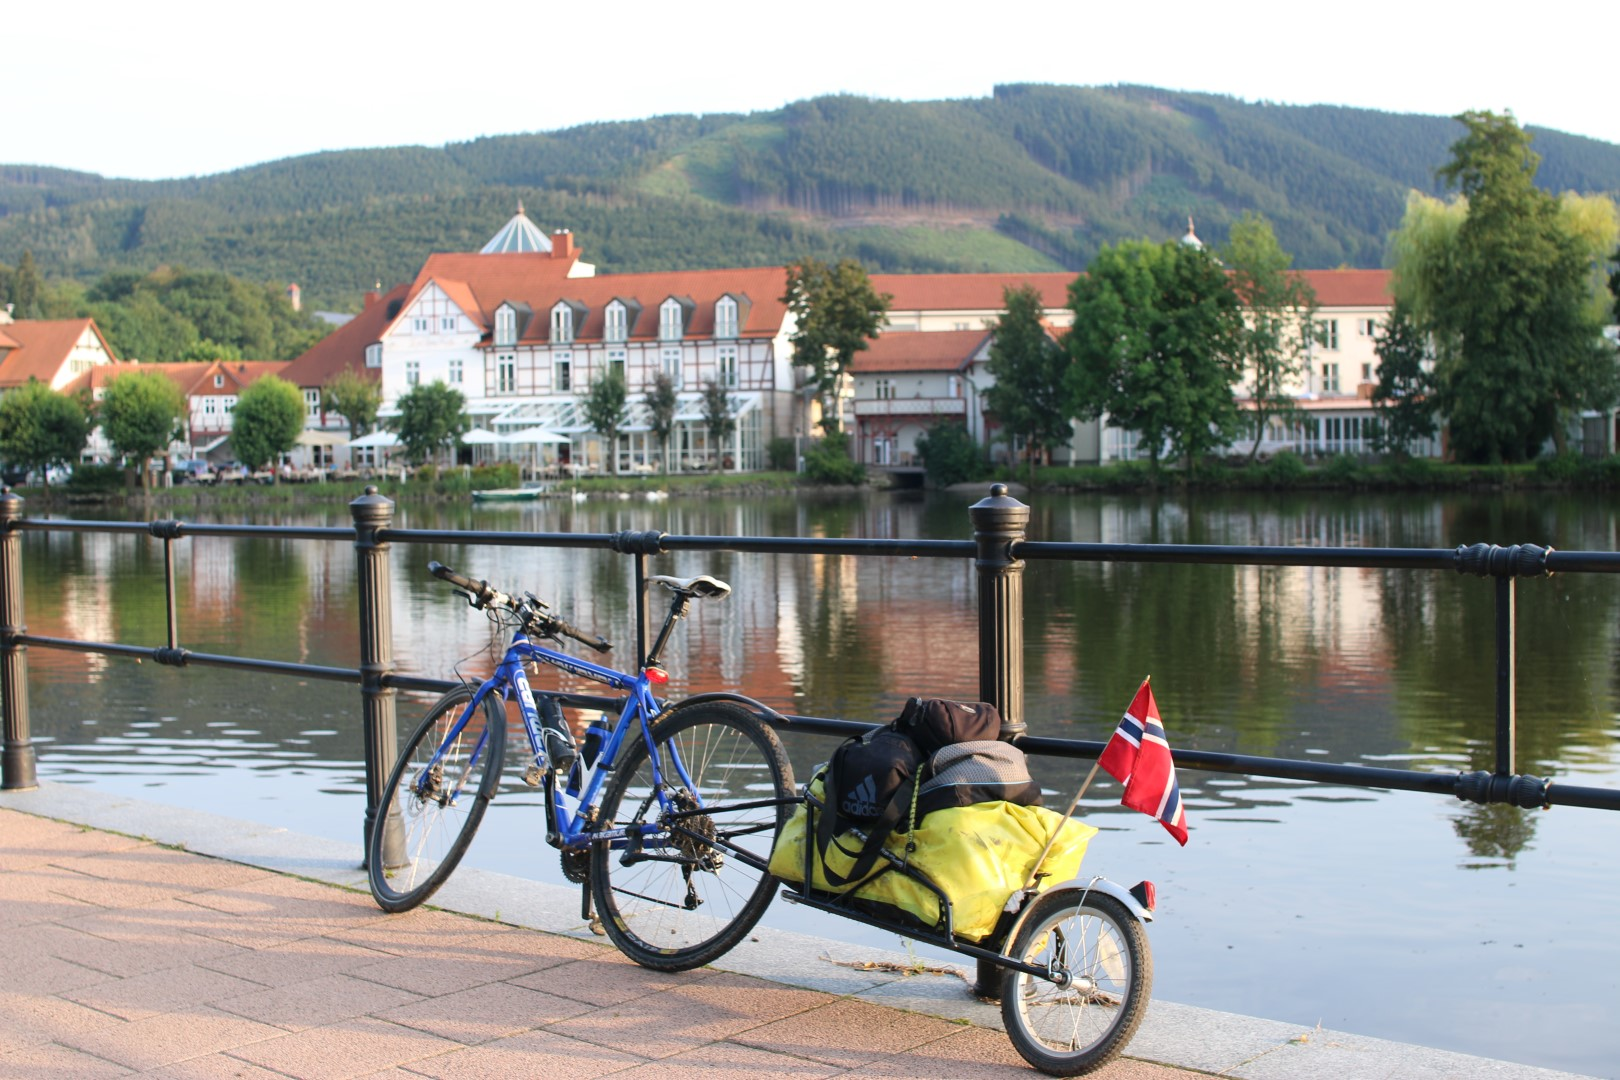 Cycling  to  Ilsenburg,  the  foot  of  the  Hartz  mountain